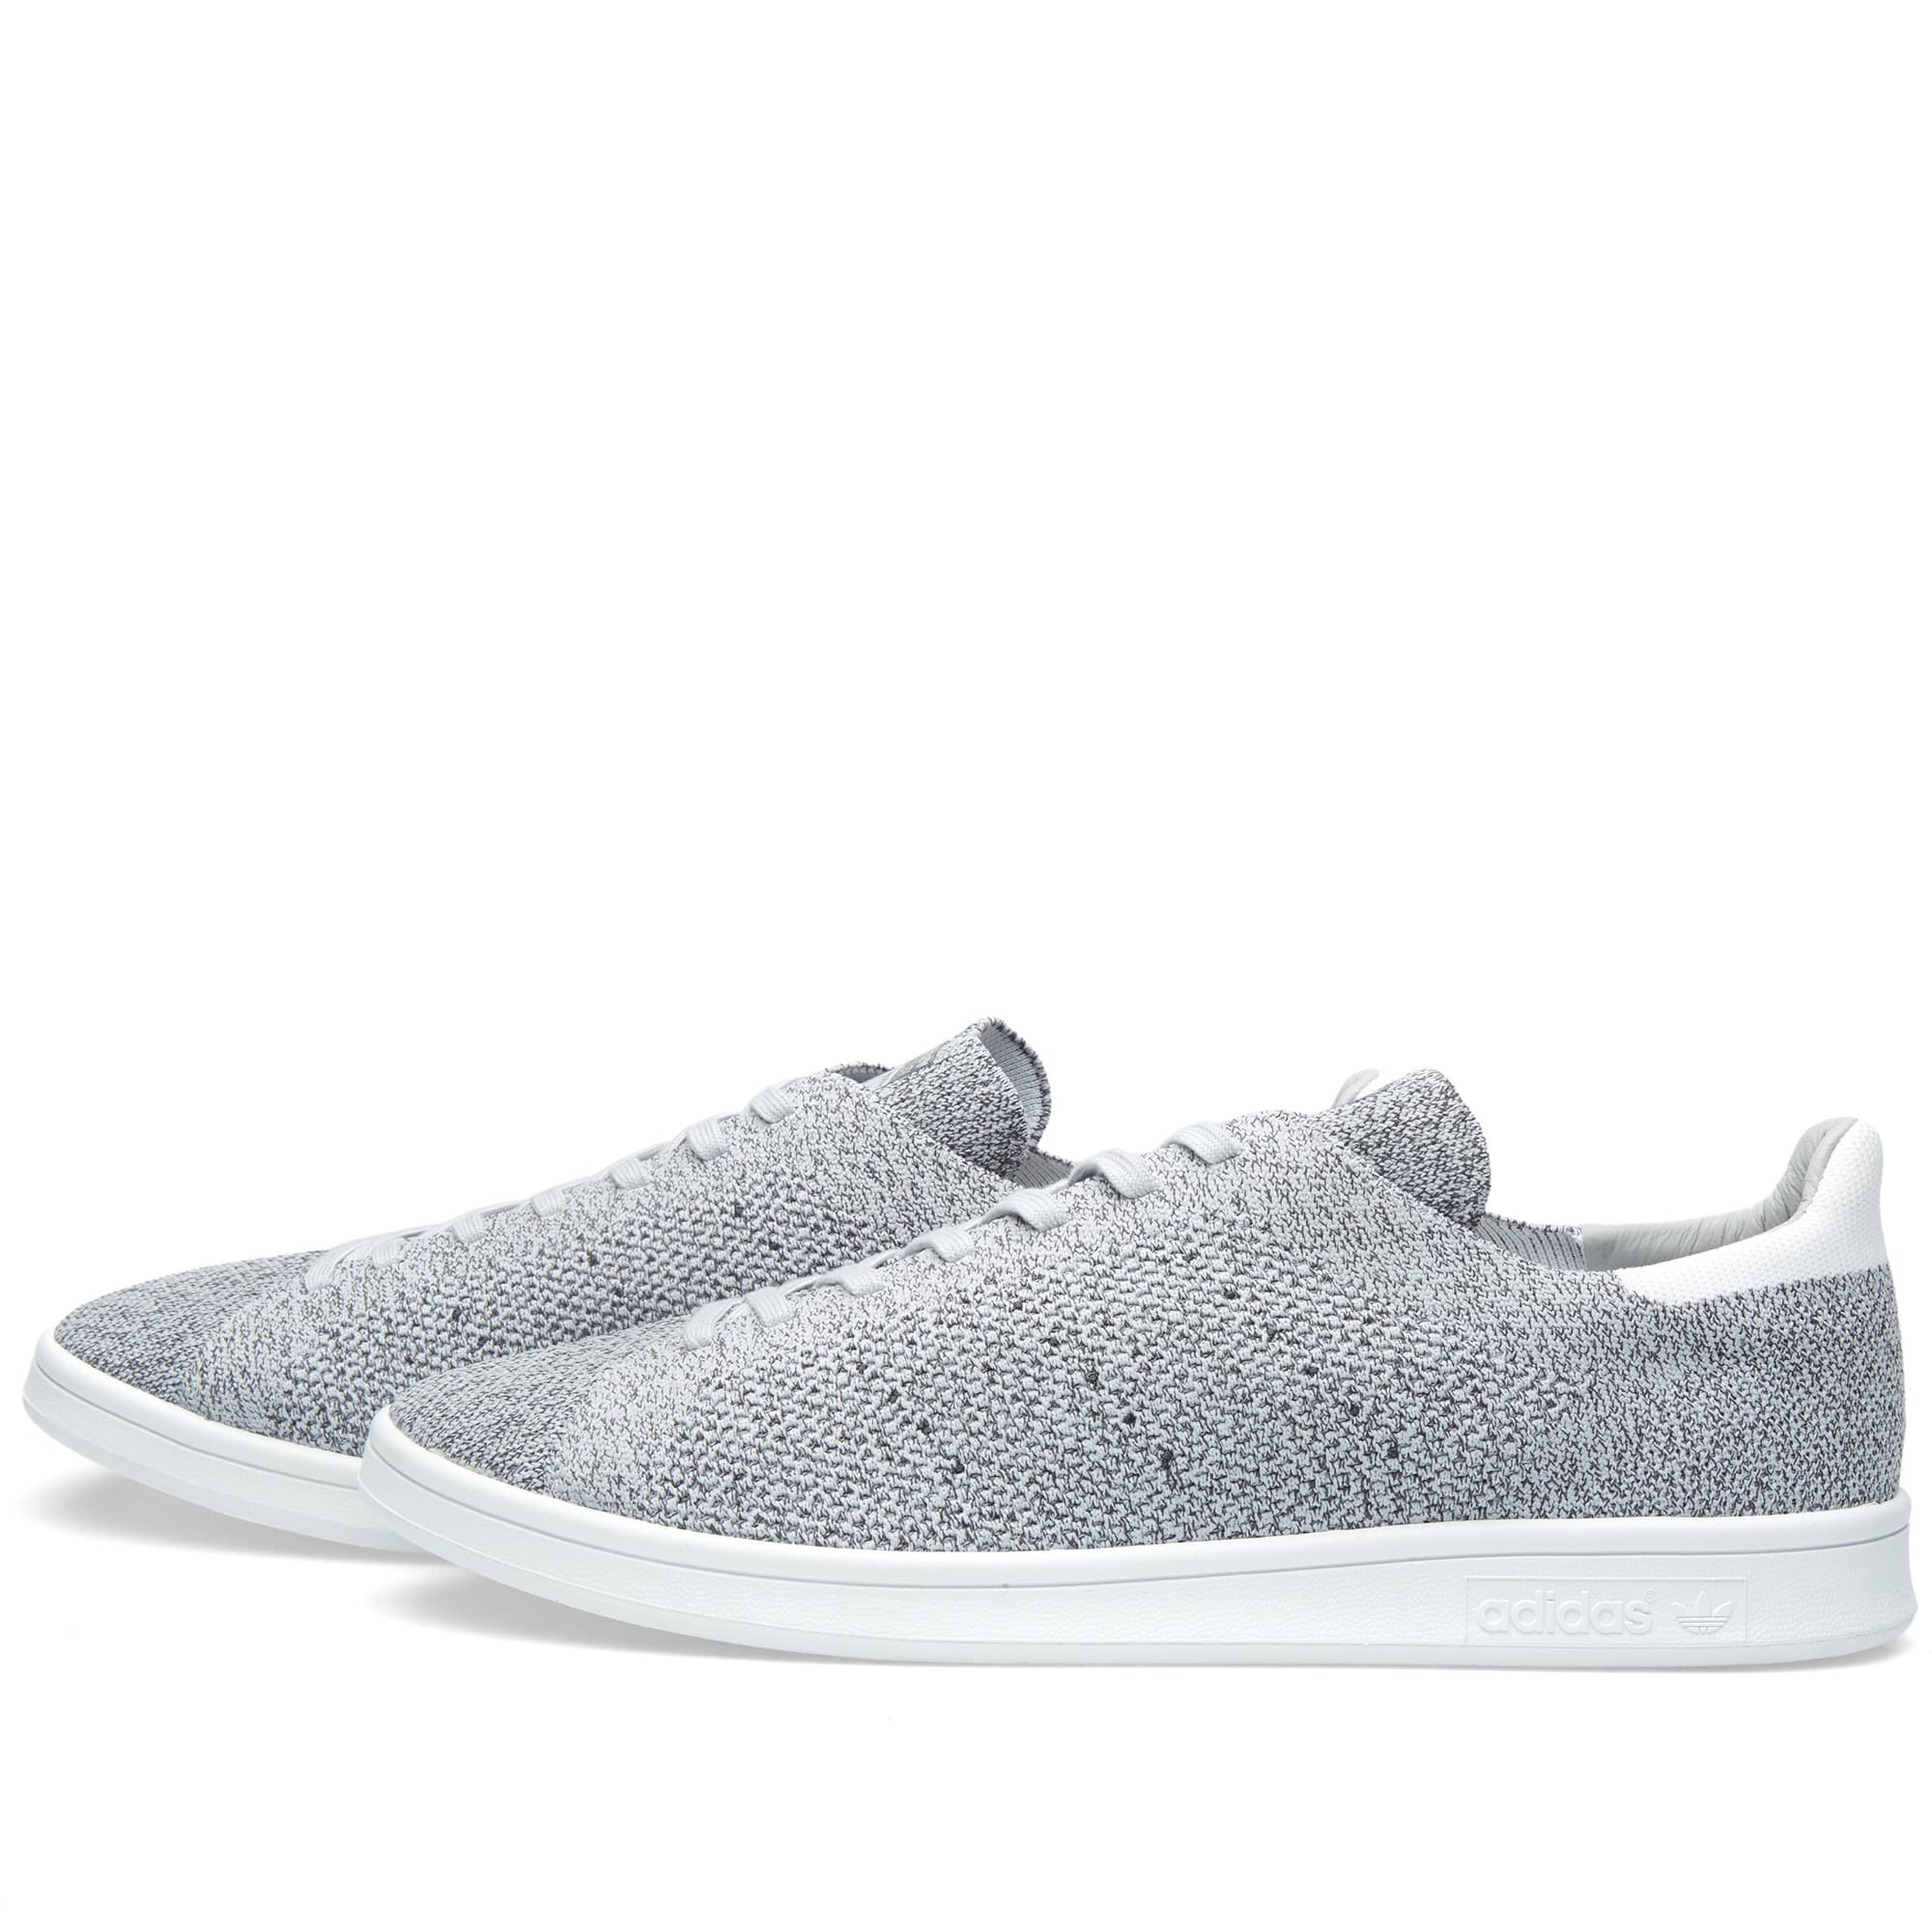 Adidas Stan Smith Primeknit Solid Grey